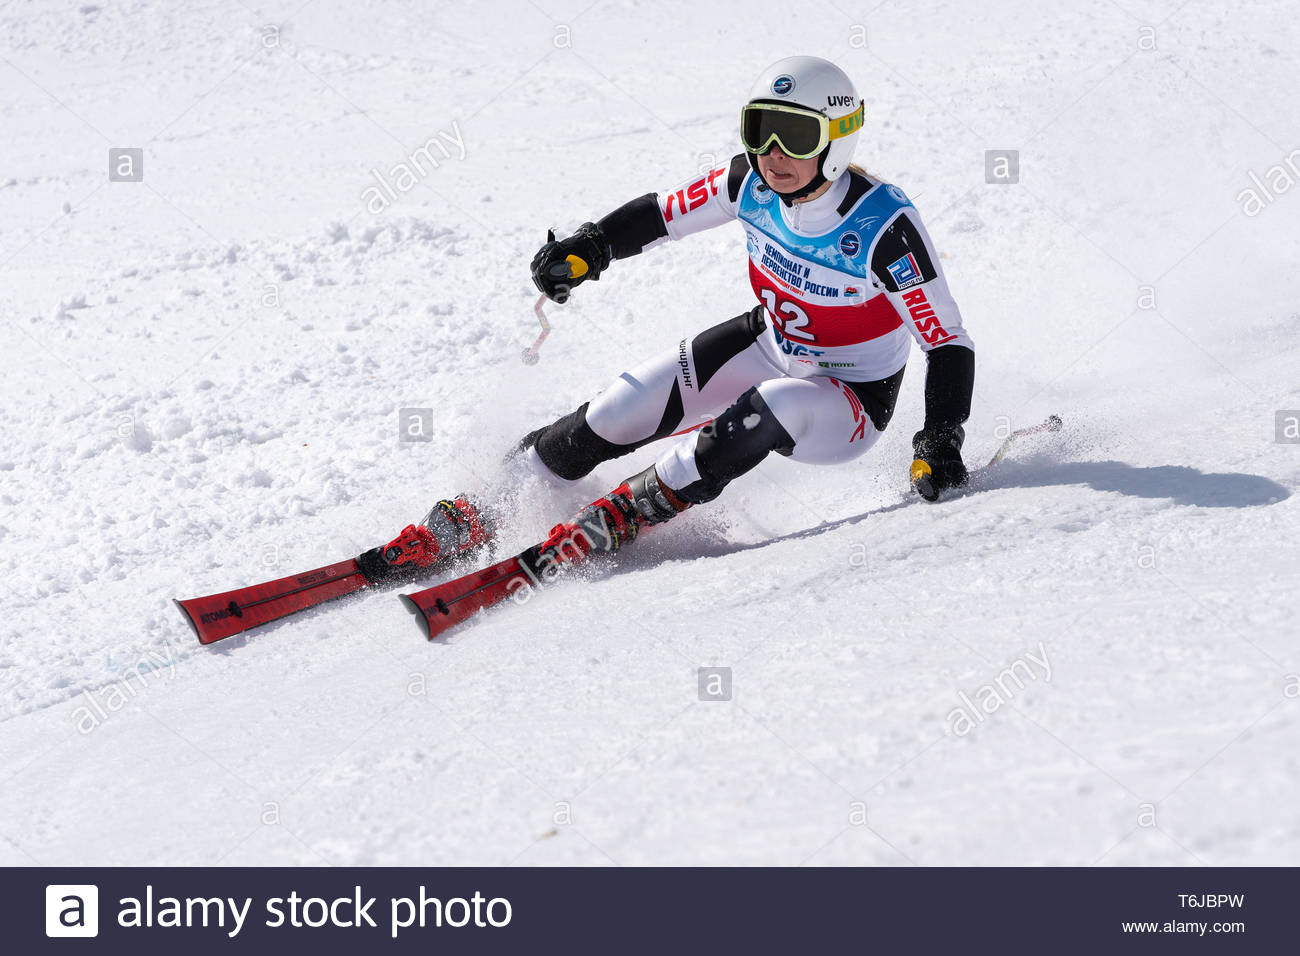 KAMCHATKA PENINSULA, RUSSIAN FEDERATION - APR 1, 2019: Russian Women's Alpine Skiing Championship, giant slalom. Mountain skier Darya Kolomova (Krasno - Stock Image